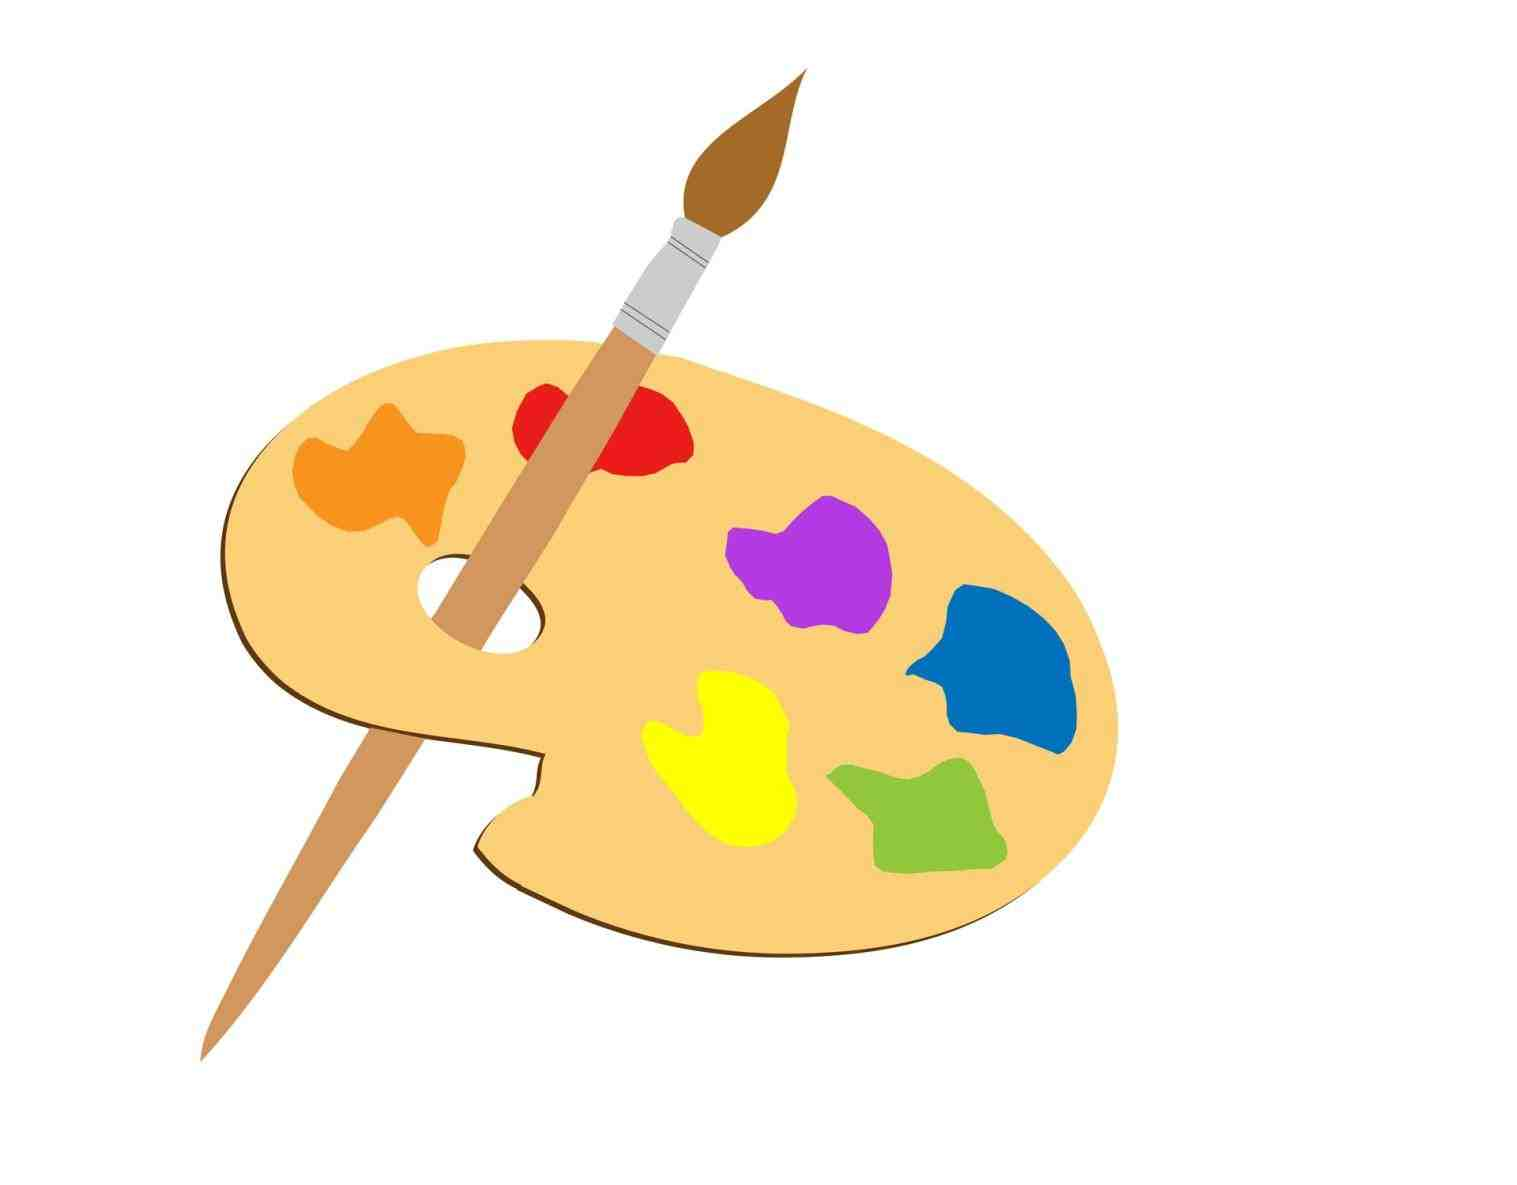 Paint clipart images graphic royalty free library Painting Clipart at PaintingValley.com | Explore collection of ... graphic royalty free library